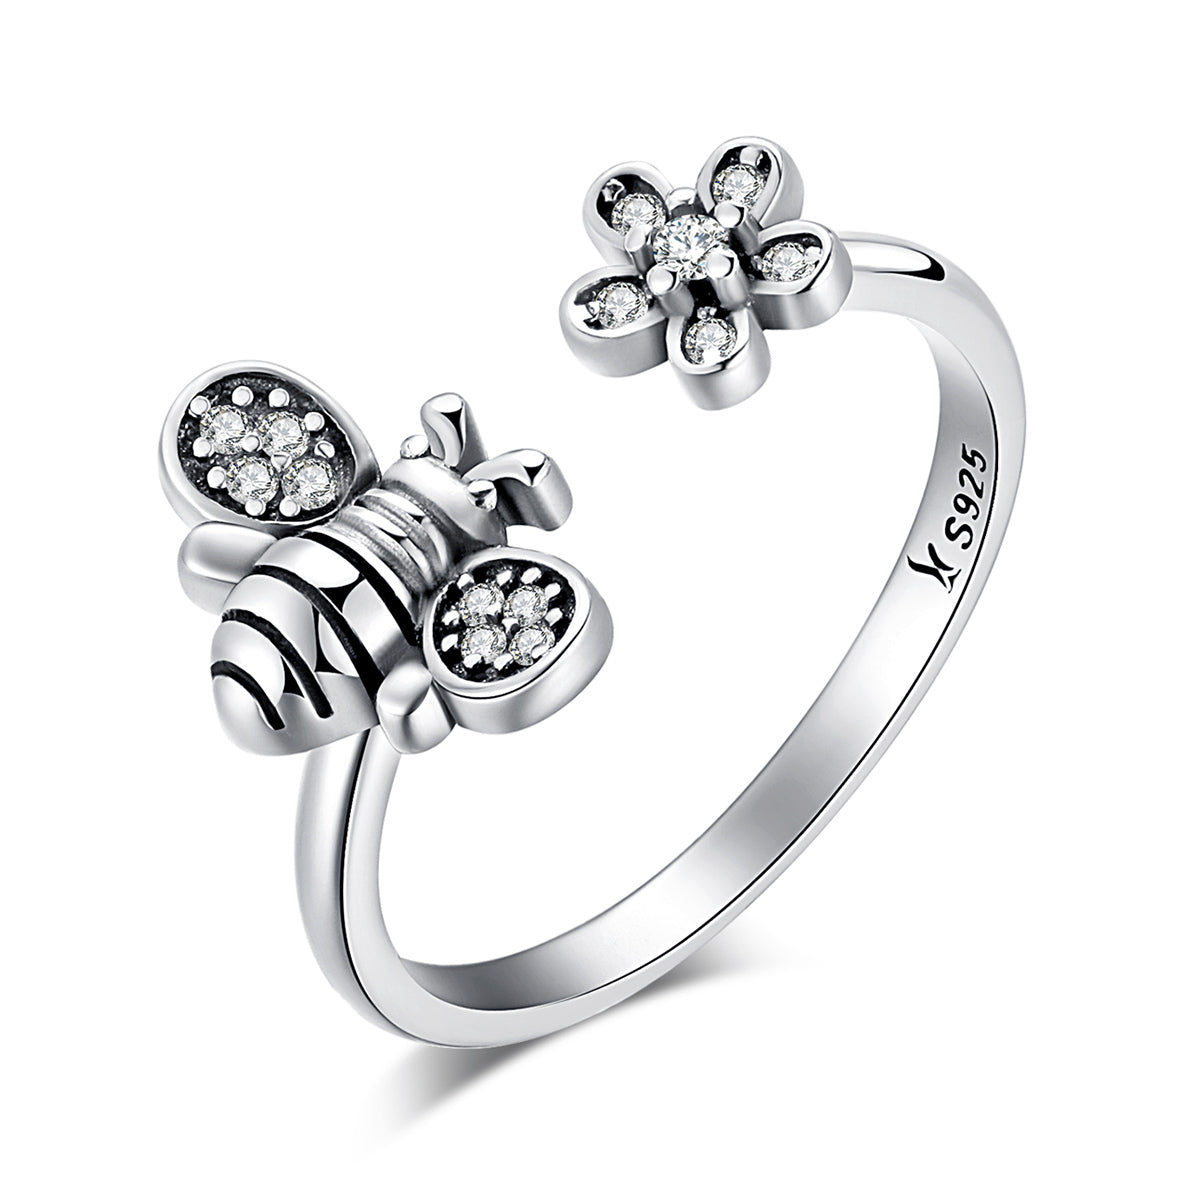 jewelry search pinterest an engagement resetting rings daisy ring google pin